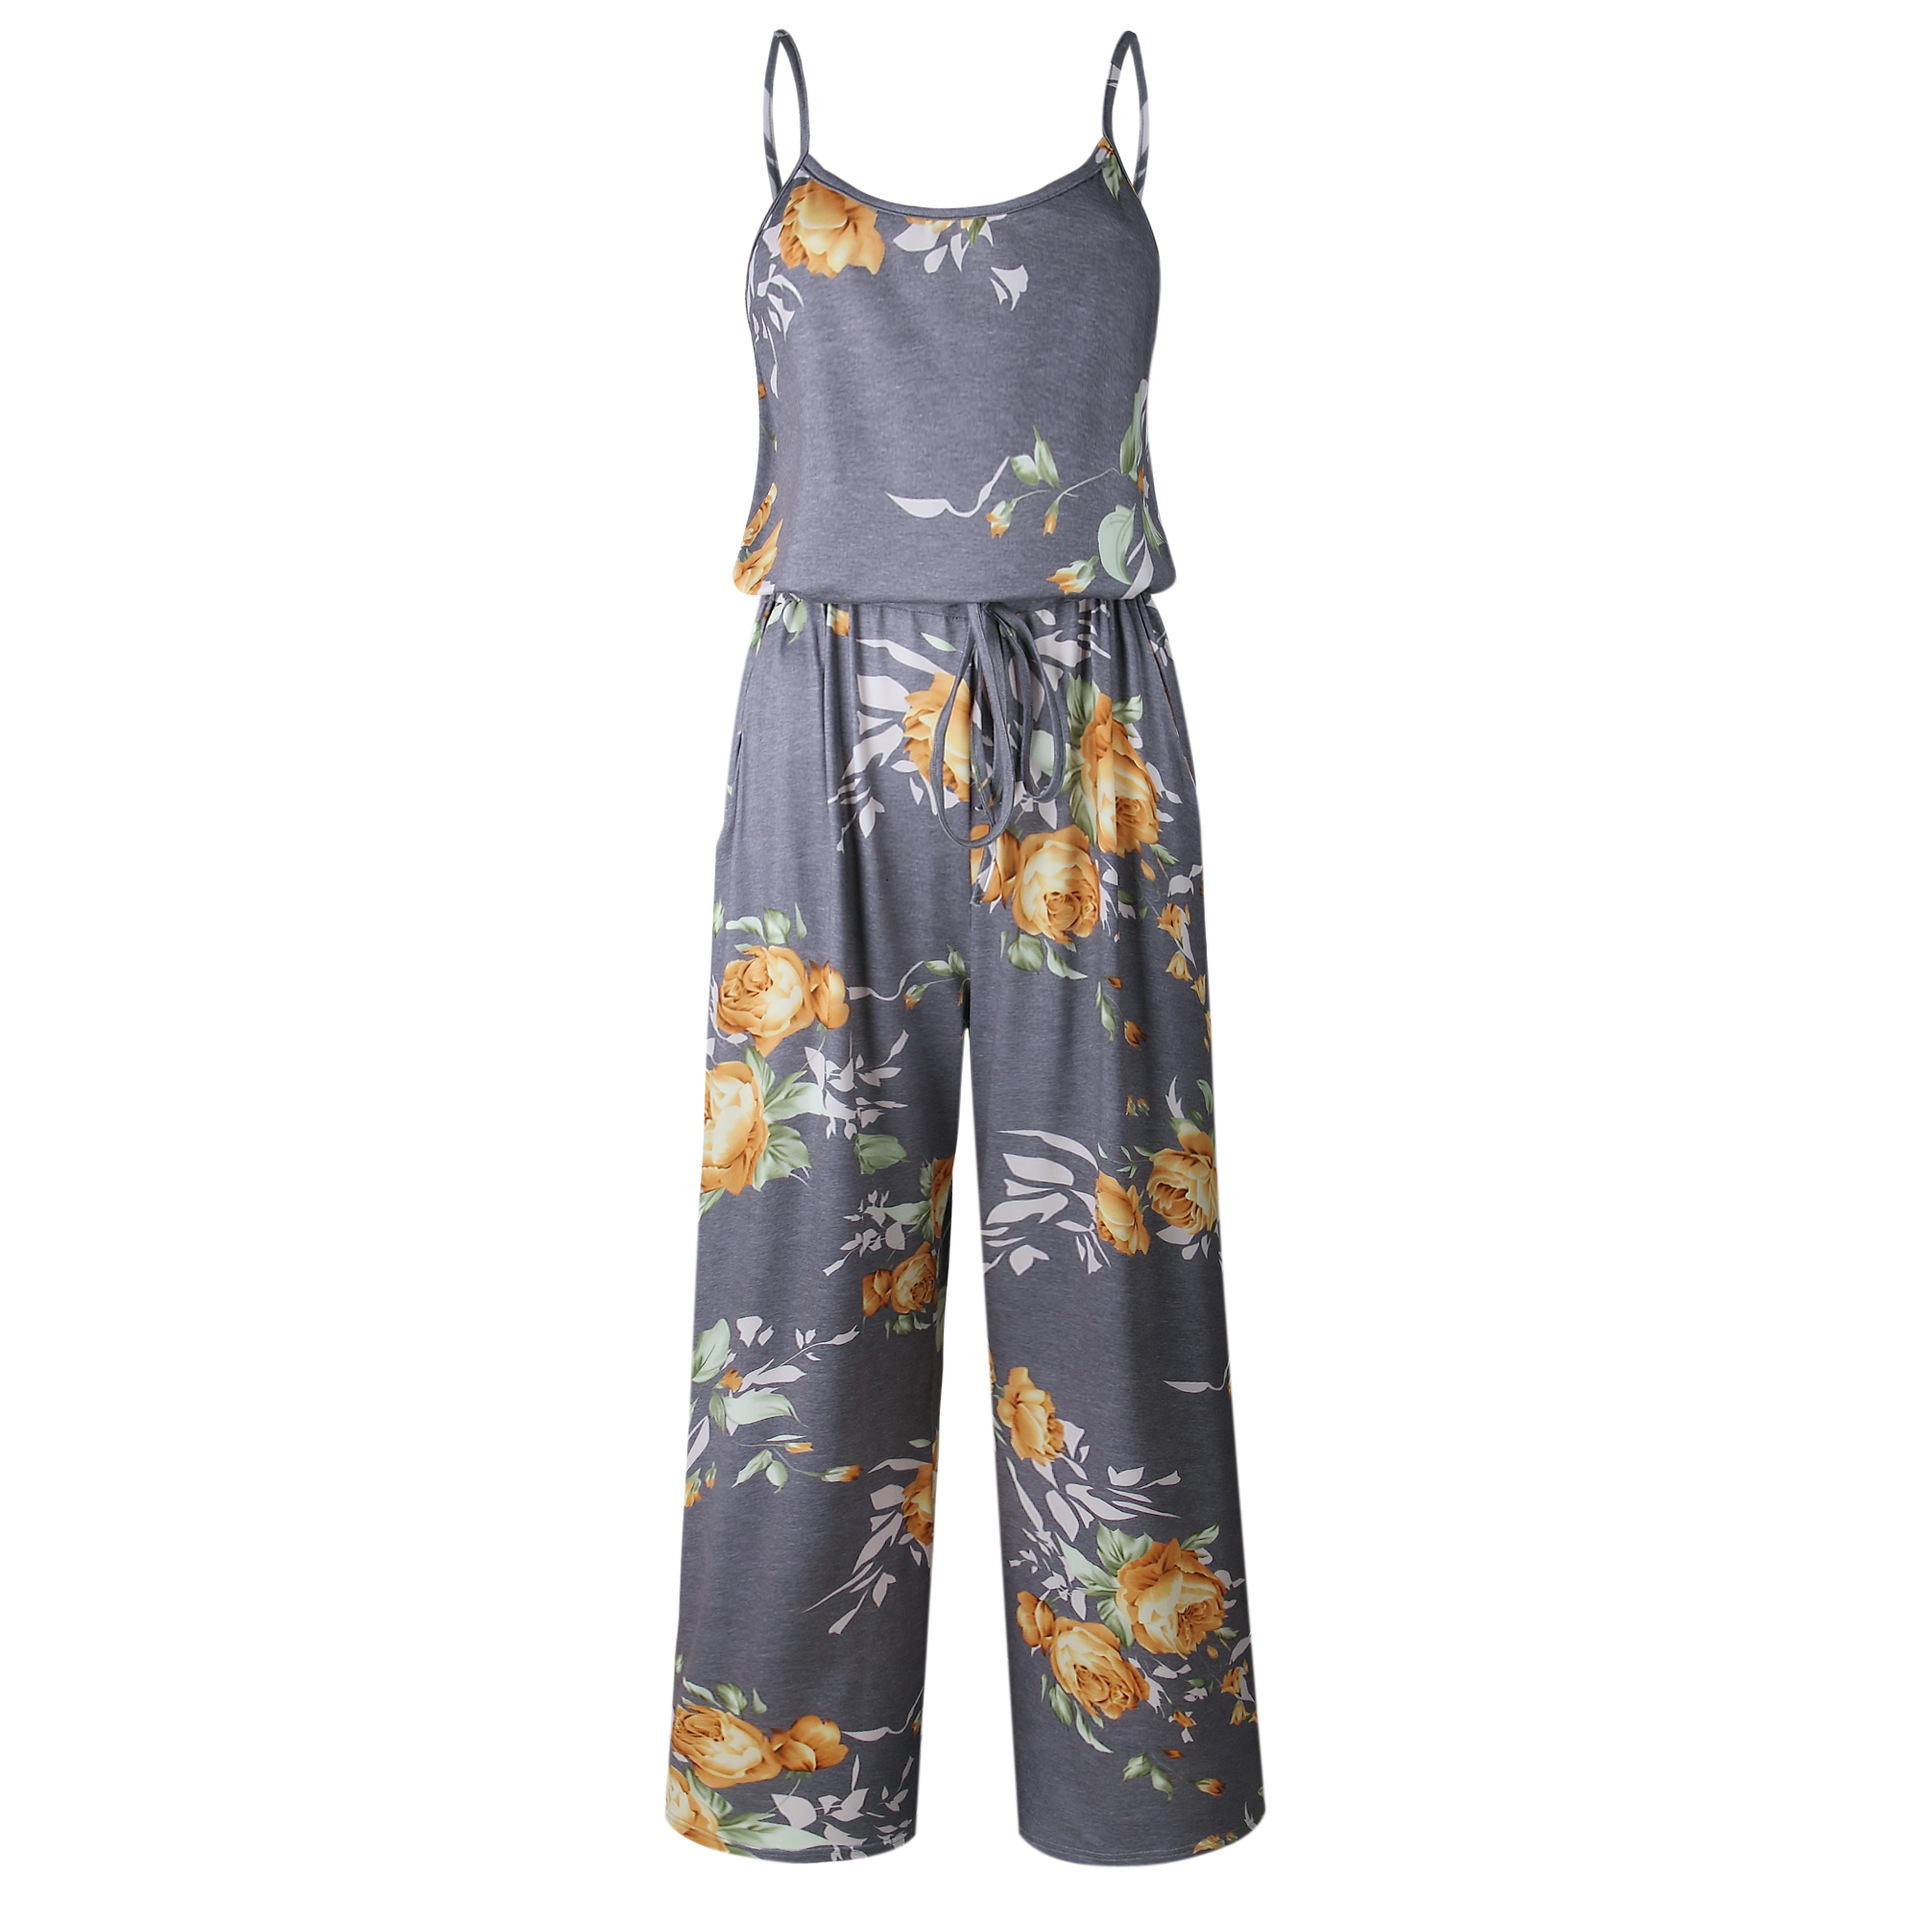 Spaghetti Strap Jumpsuit Women 2018 Summer Long Pants Floral Print Rompers Beach Casual Jumpsuits Sleeveless Sashes Playsuits 7